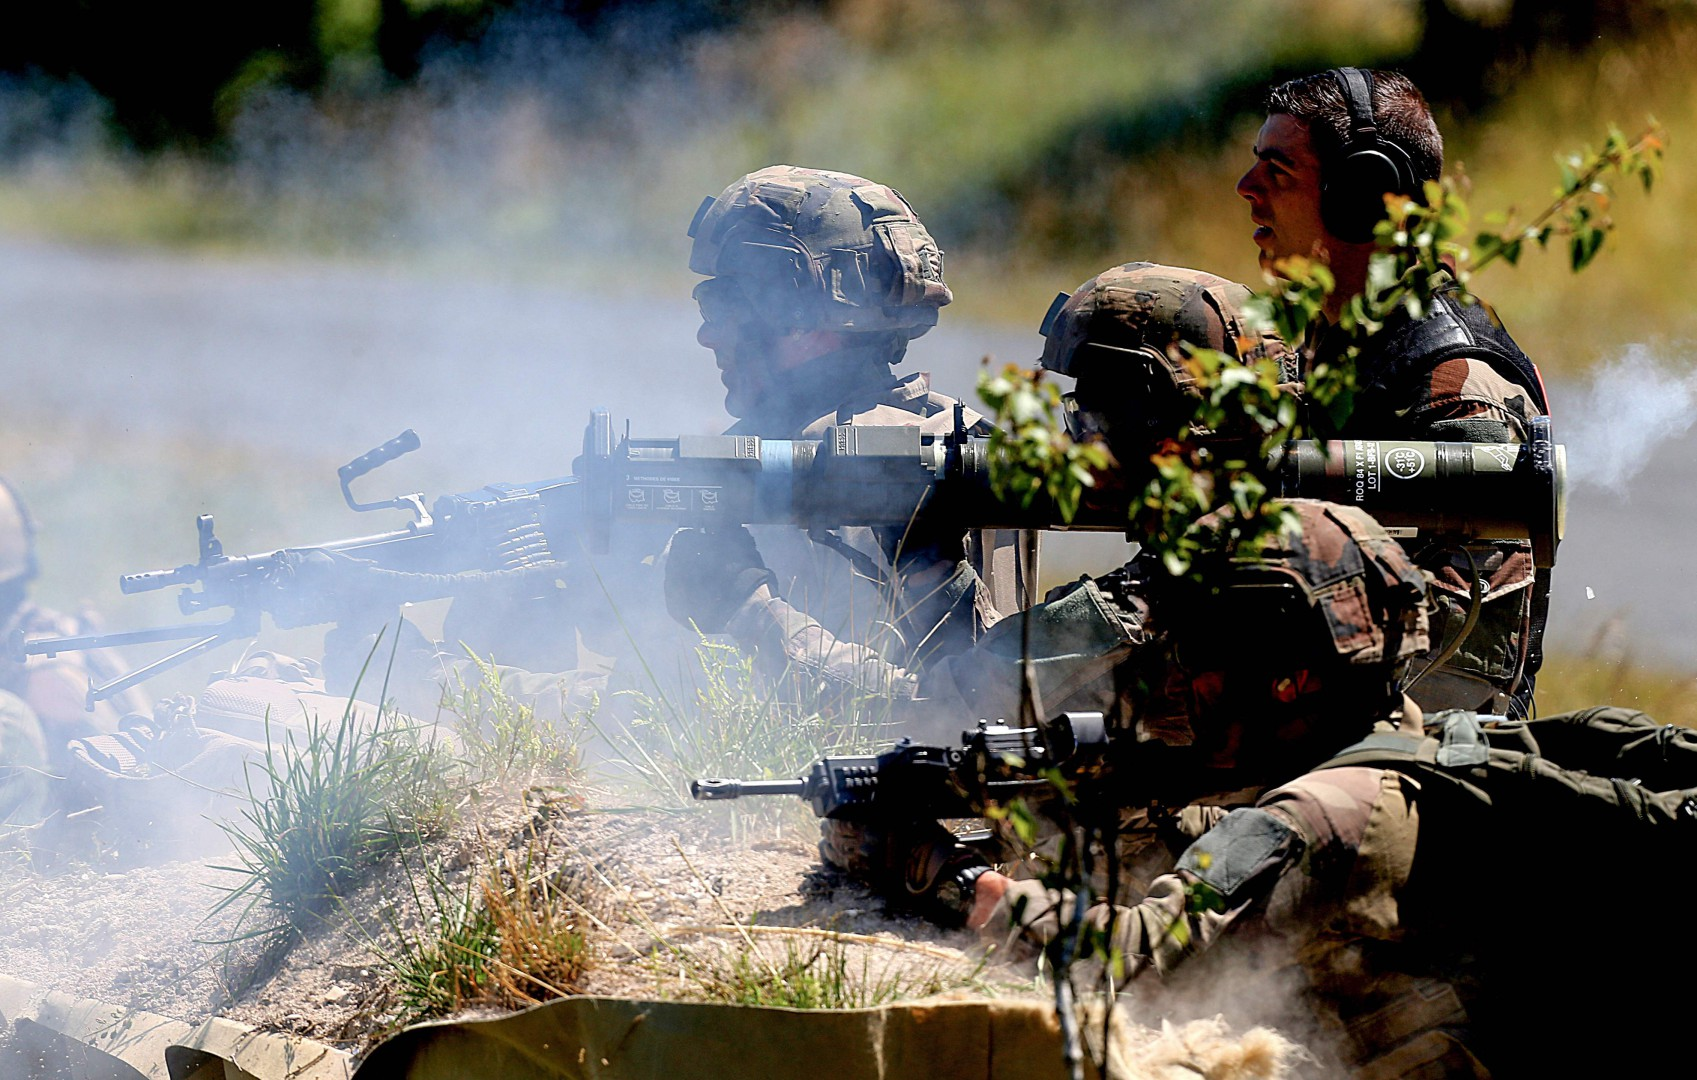 French army soldiers fire live ammunitions as they participate on June 26, 2018, in military manoeuvres at the Combined Armed Forces Shooting Training Center (CETIA-S) in Suippes, eastern France. The 17,000 hectares training centre, located in Suippes under the direction of the 51st Infantry Regiment, is the only one in France to give the opportunity to the different army corps to perform live manoeuvres. / AFP PHOTO / FRANCOIS NASCIMBENI